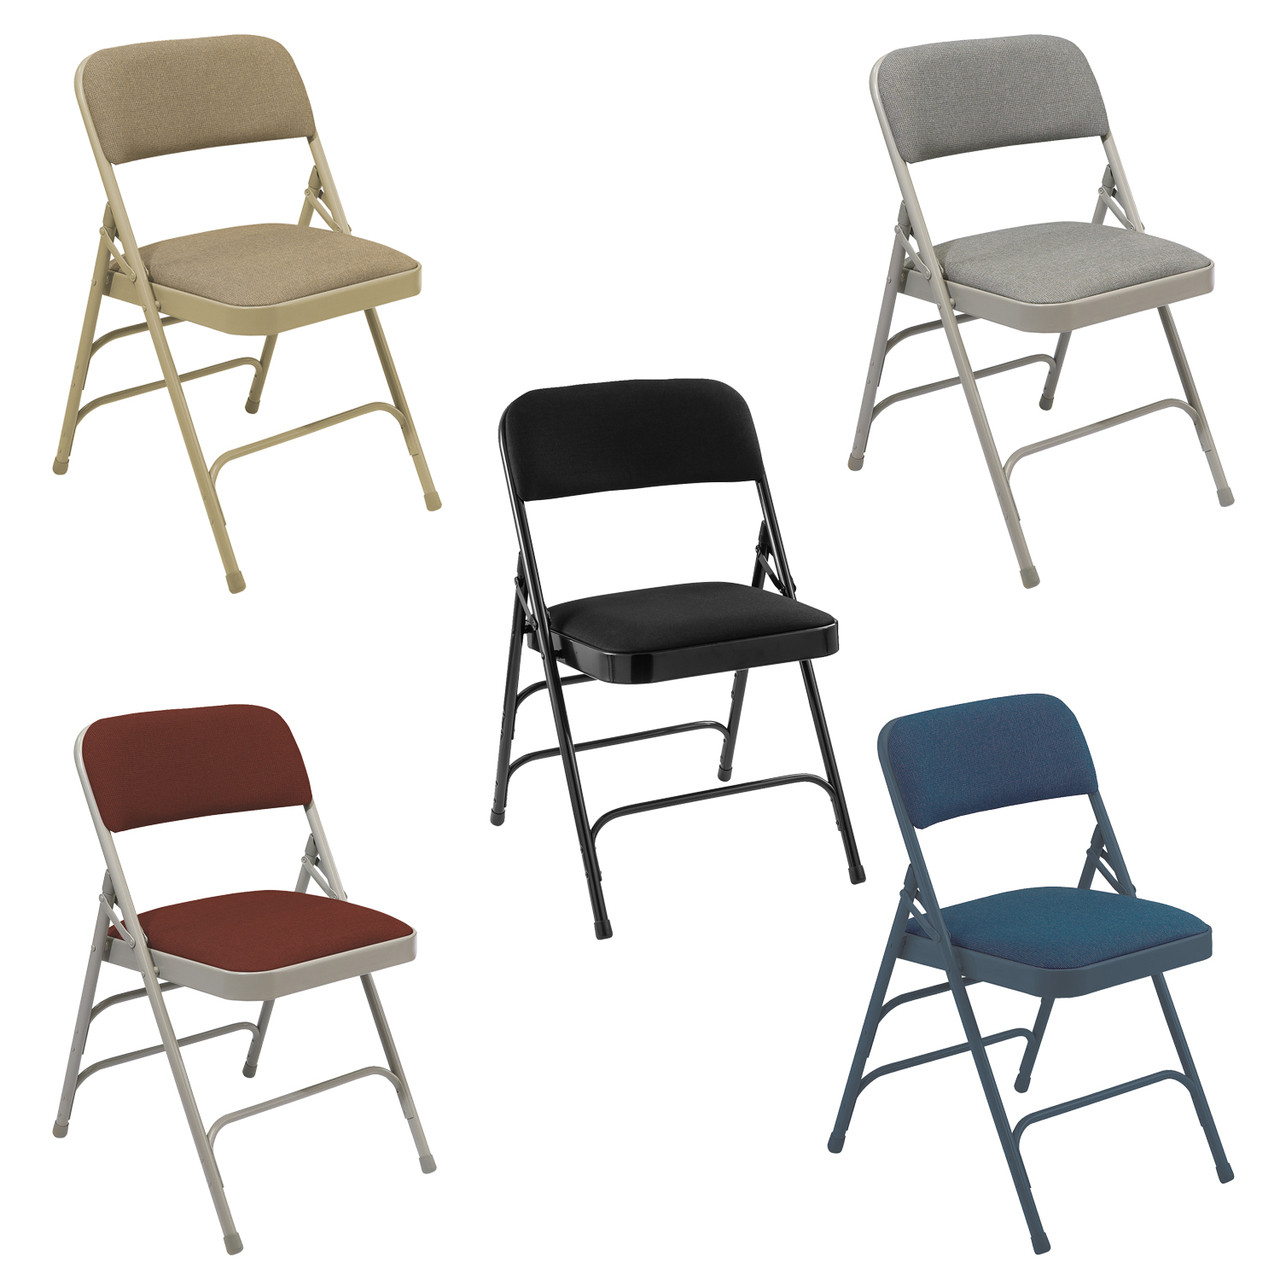 cloth padded folding chairs best pc body builder hd fabric chair by national public seating 2300 series